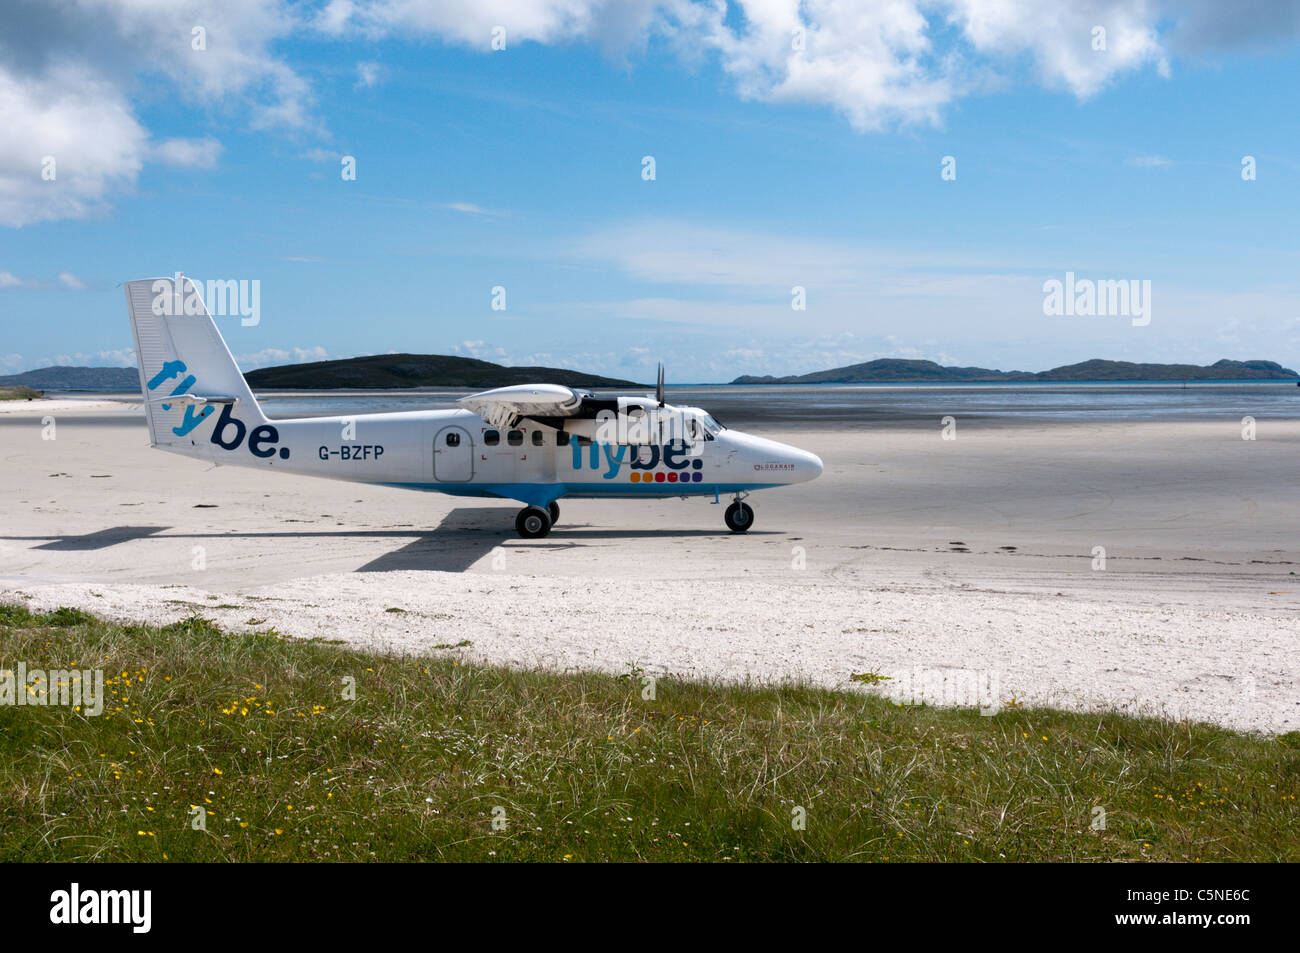 A de Havilland DHC-6 Twin Otter plane of Flybe - Loganair on the beach airstrip on the island of Barra in the Outer - Stock Image